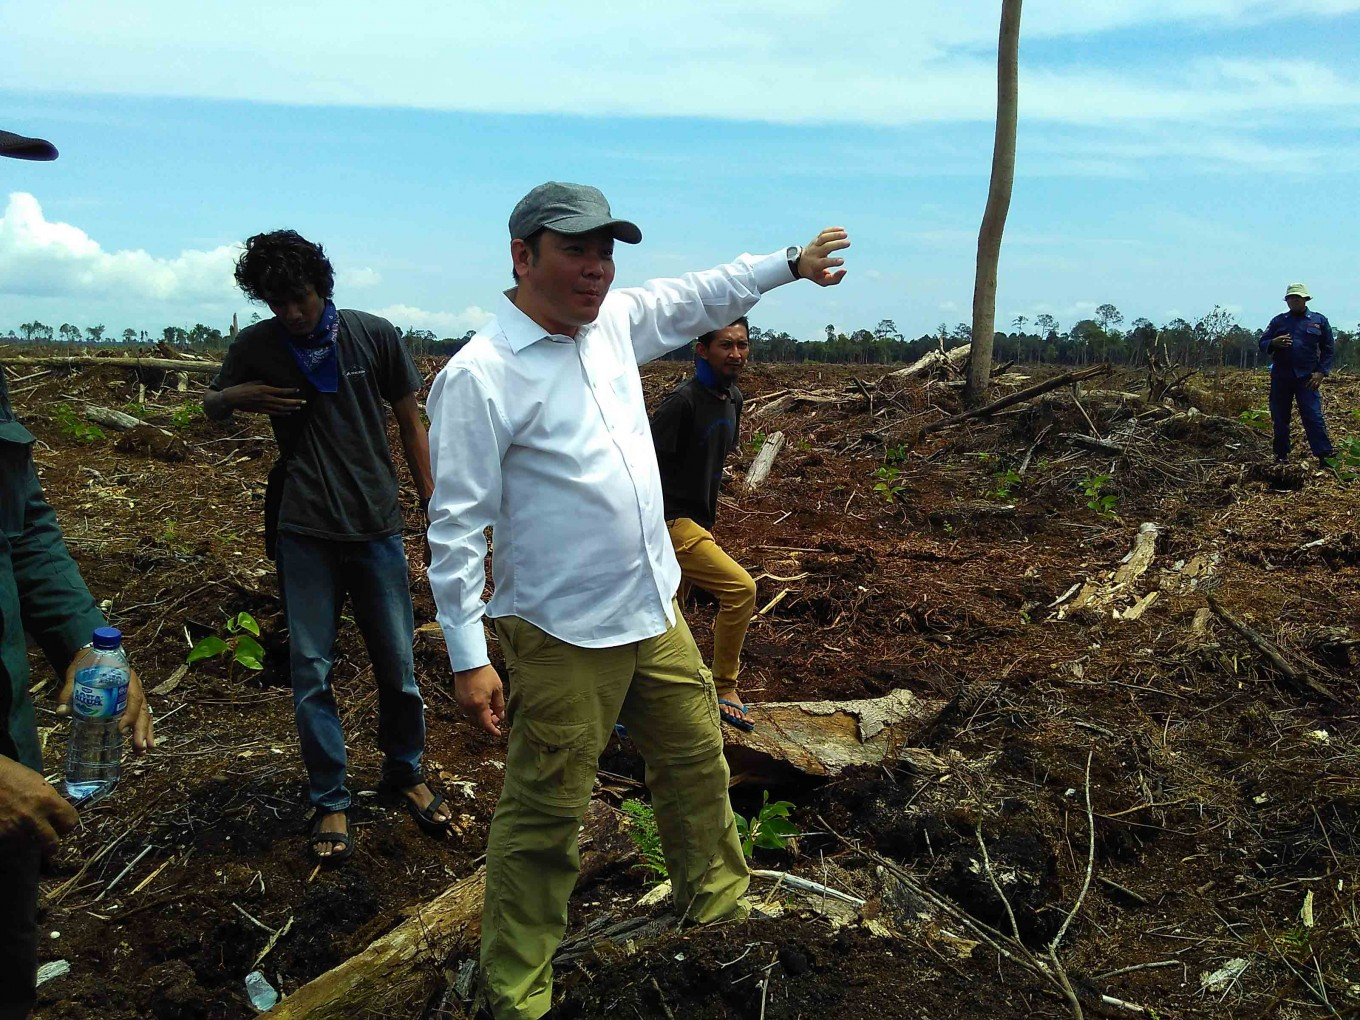 RAPP accused of peatland conversion